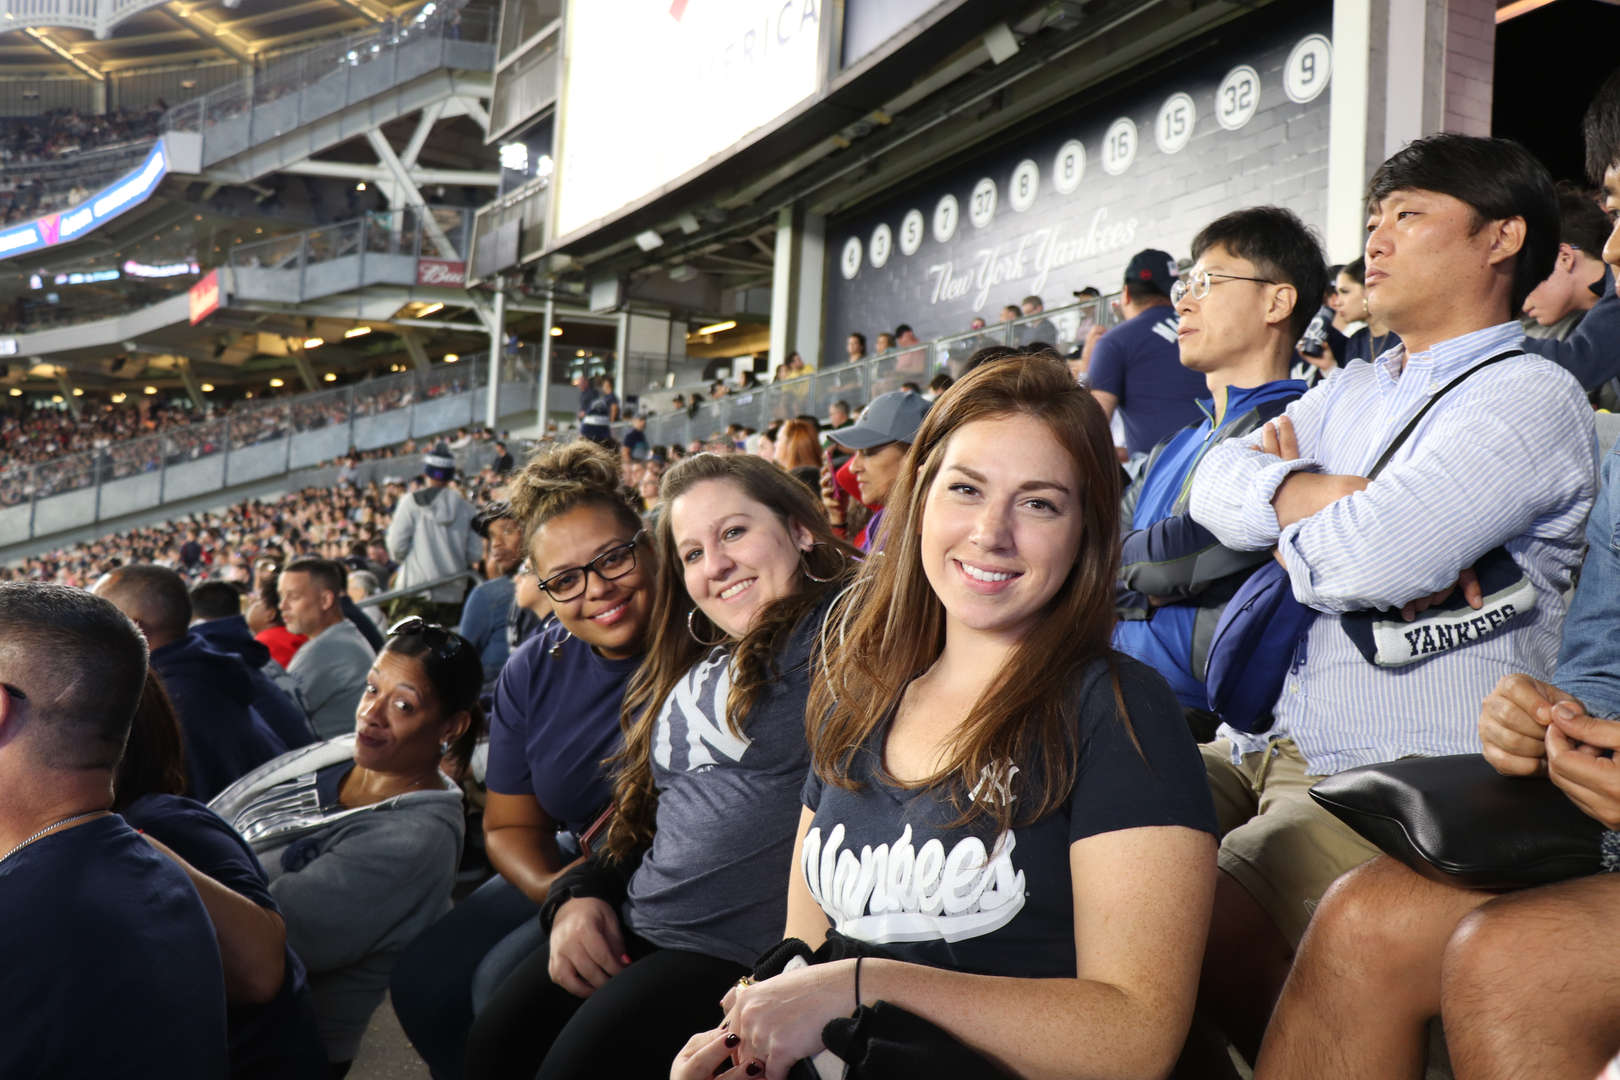 Some of the teachers at the Yankee game.